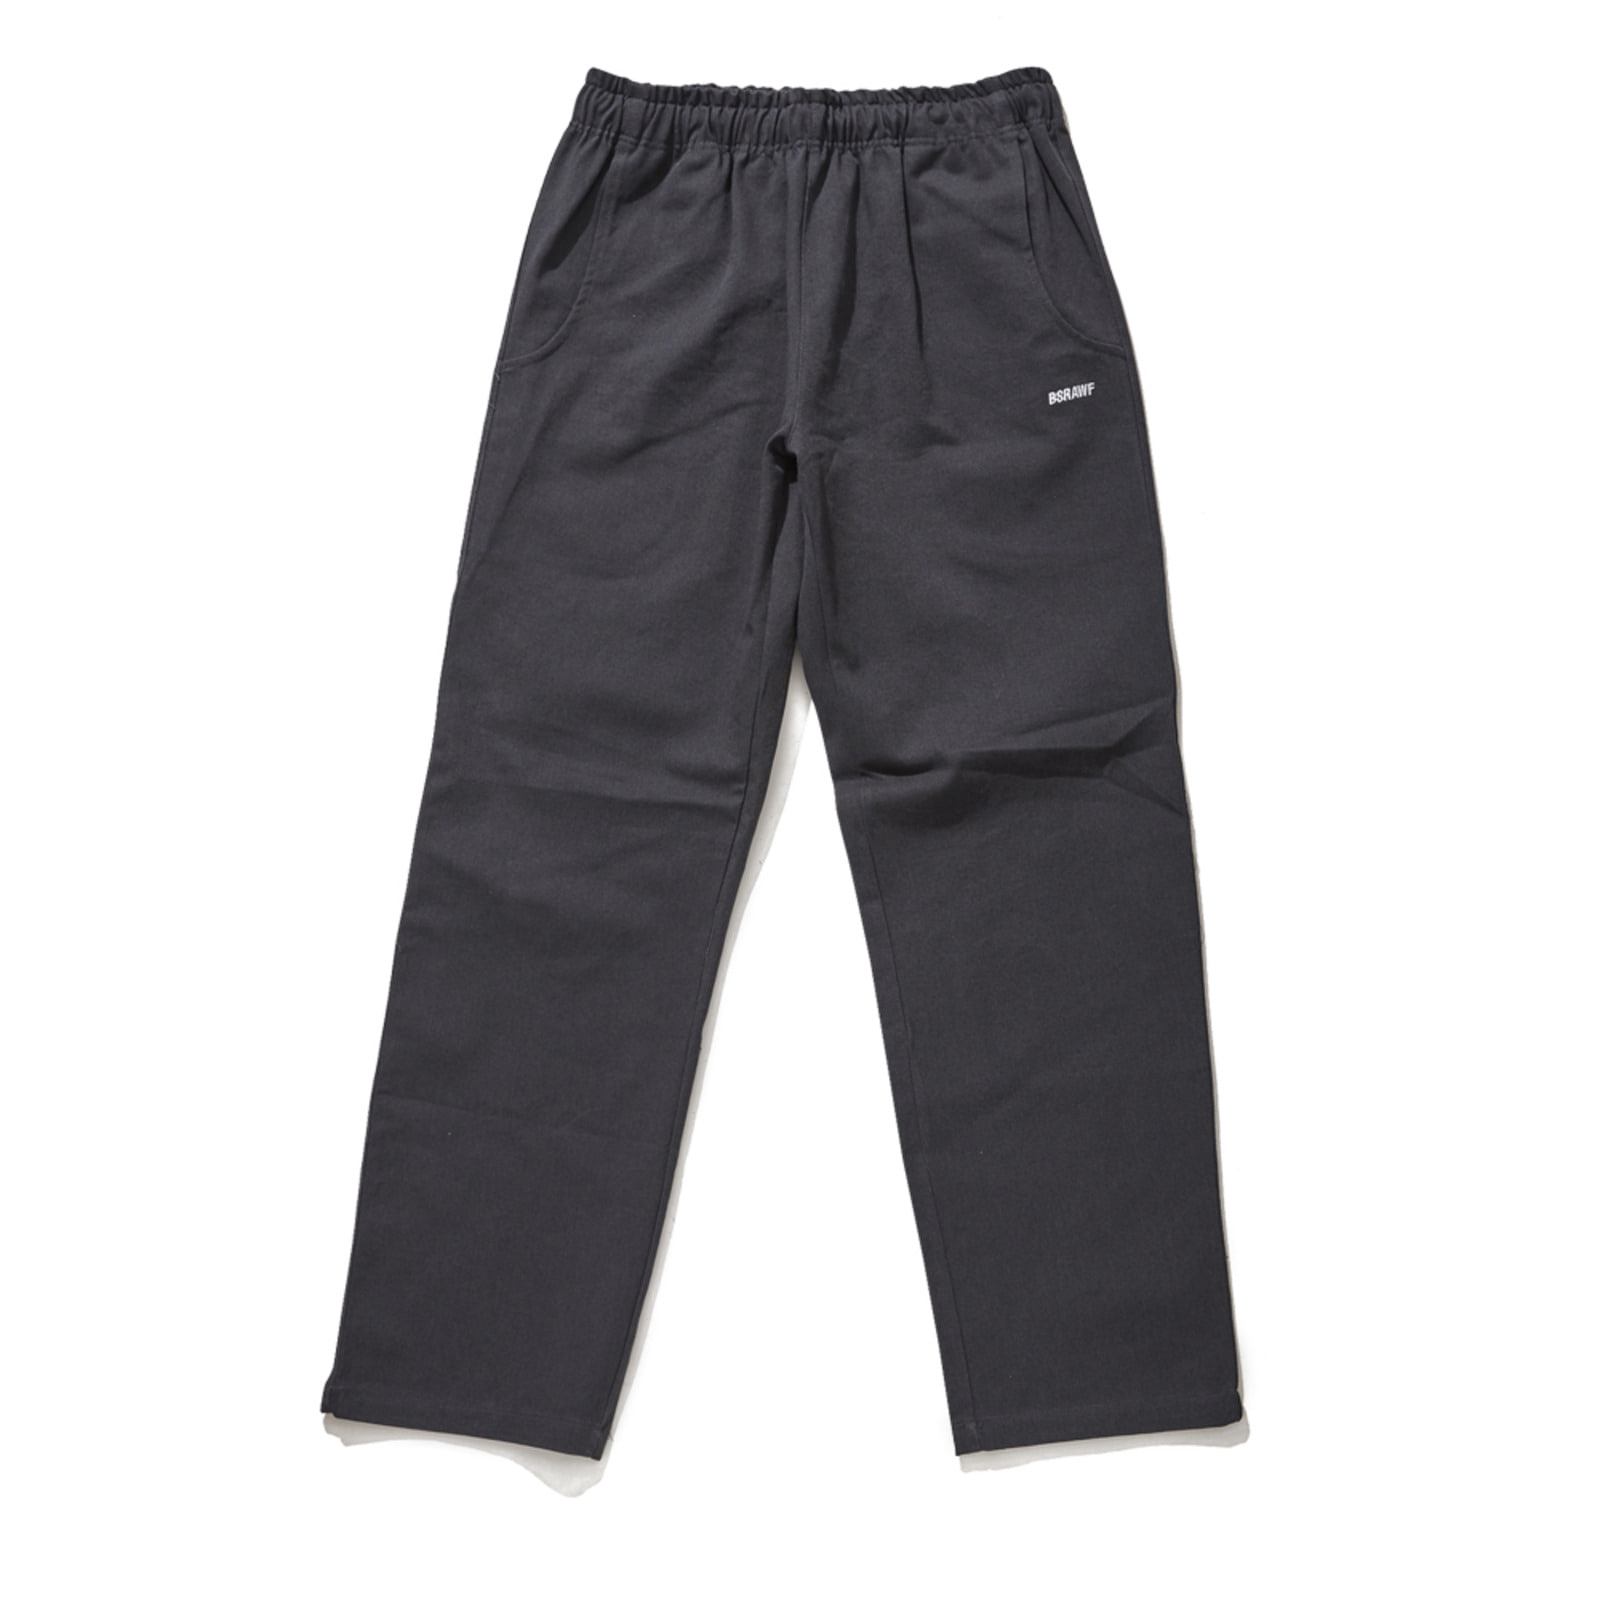 BSR COTTON BASIC TRACK PANTS CHARCOAL